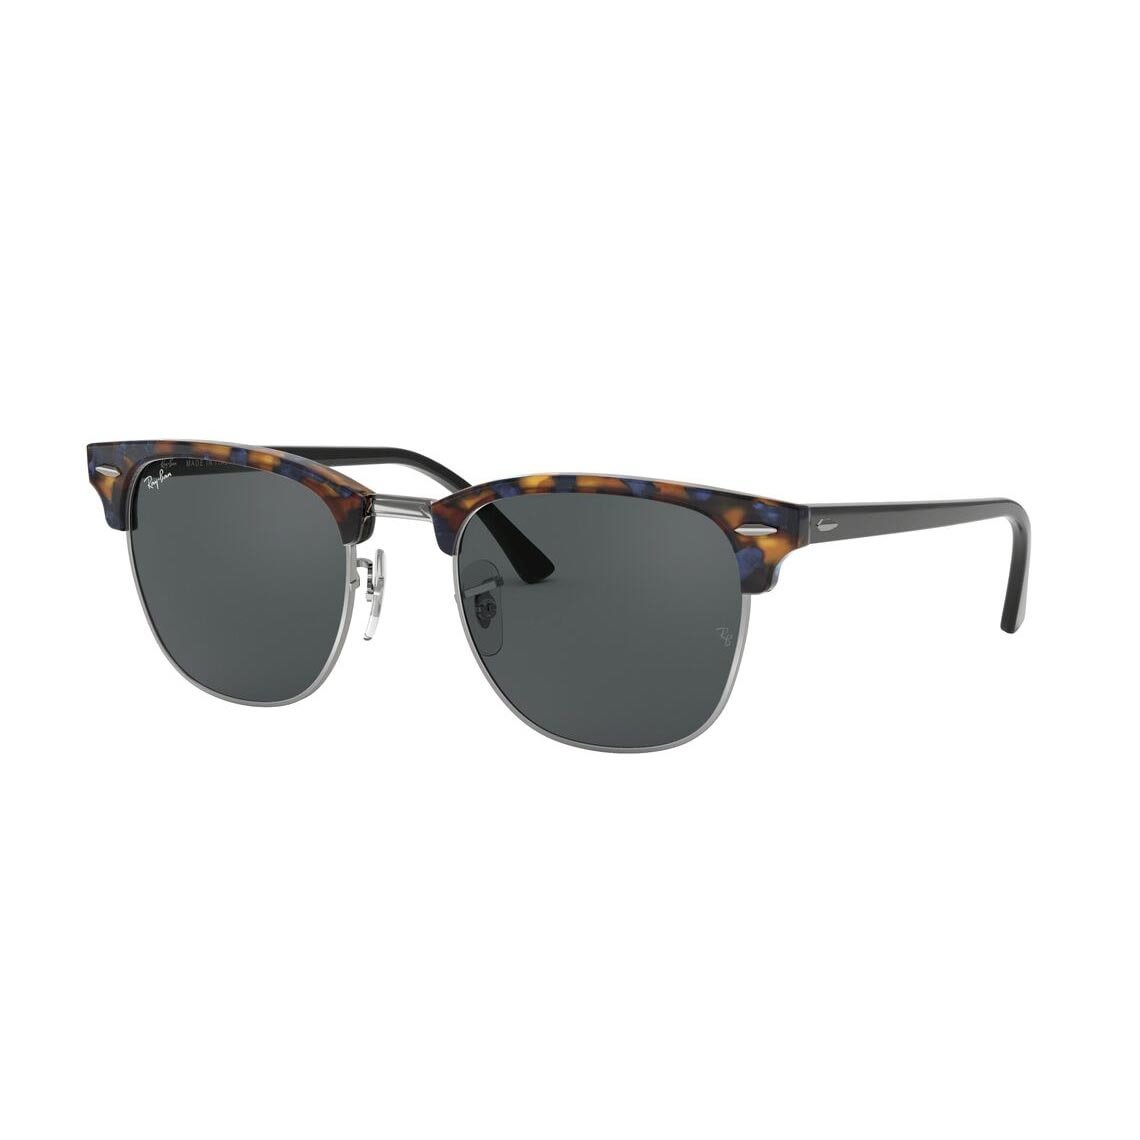 Ray-Ban Clubmaster RB3016 1158R5 51